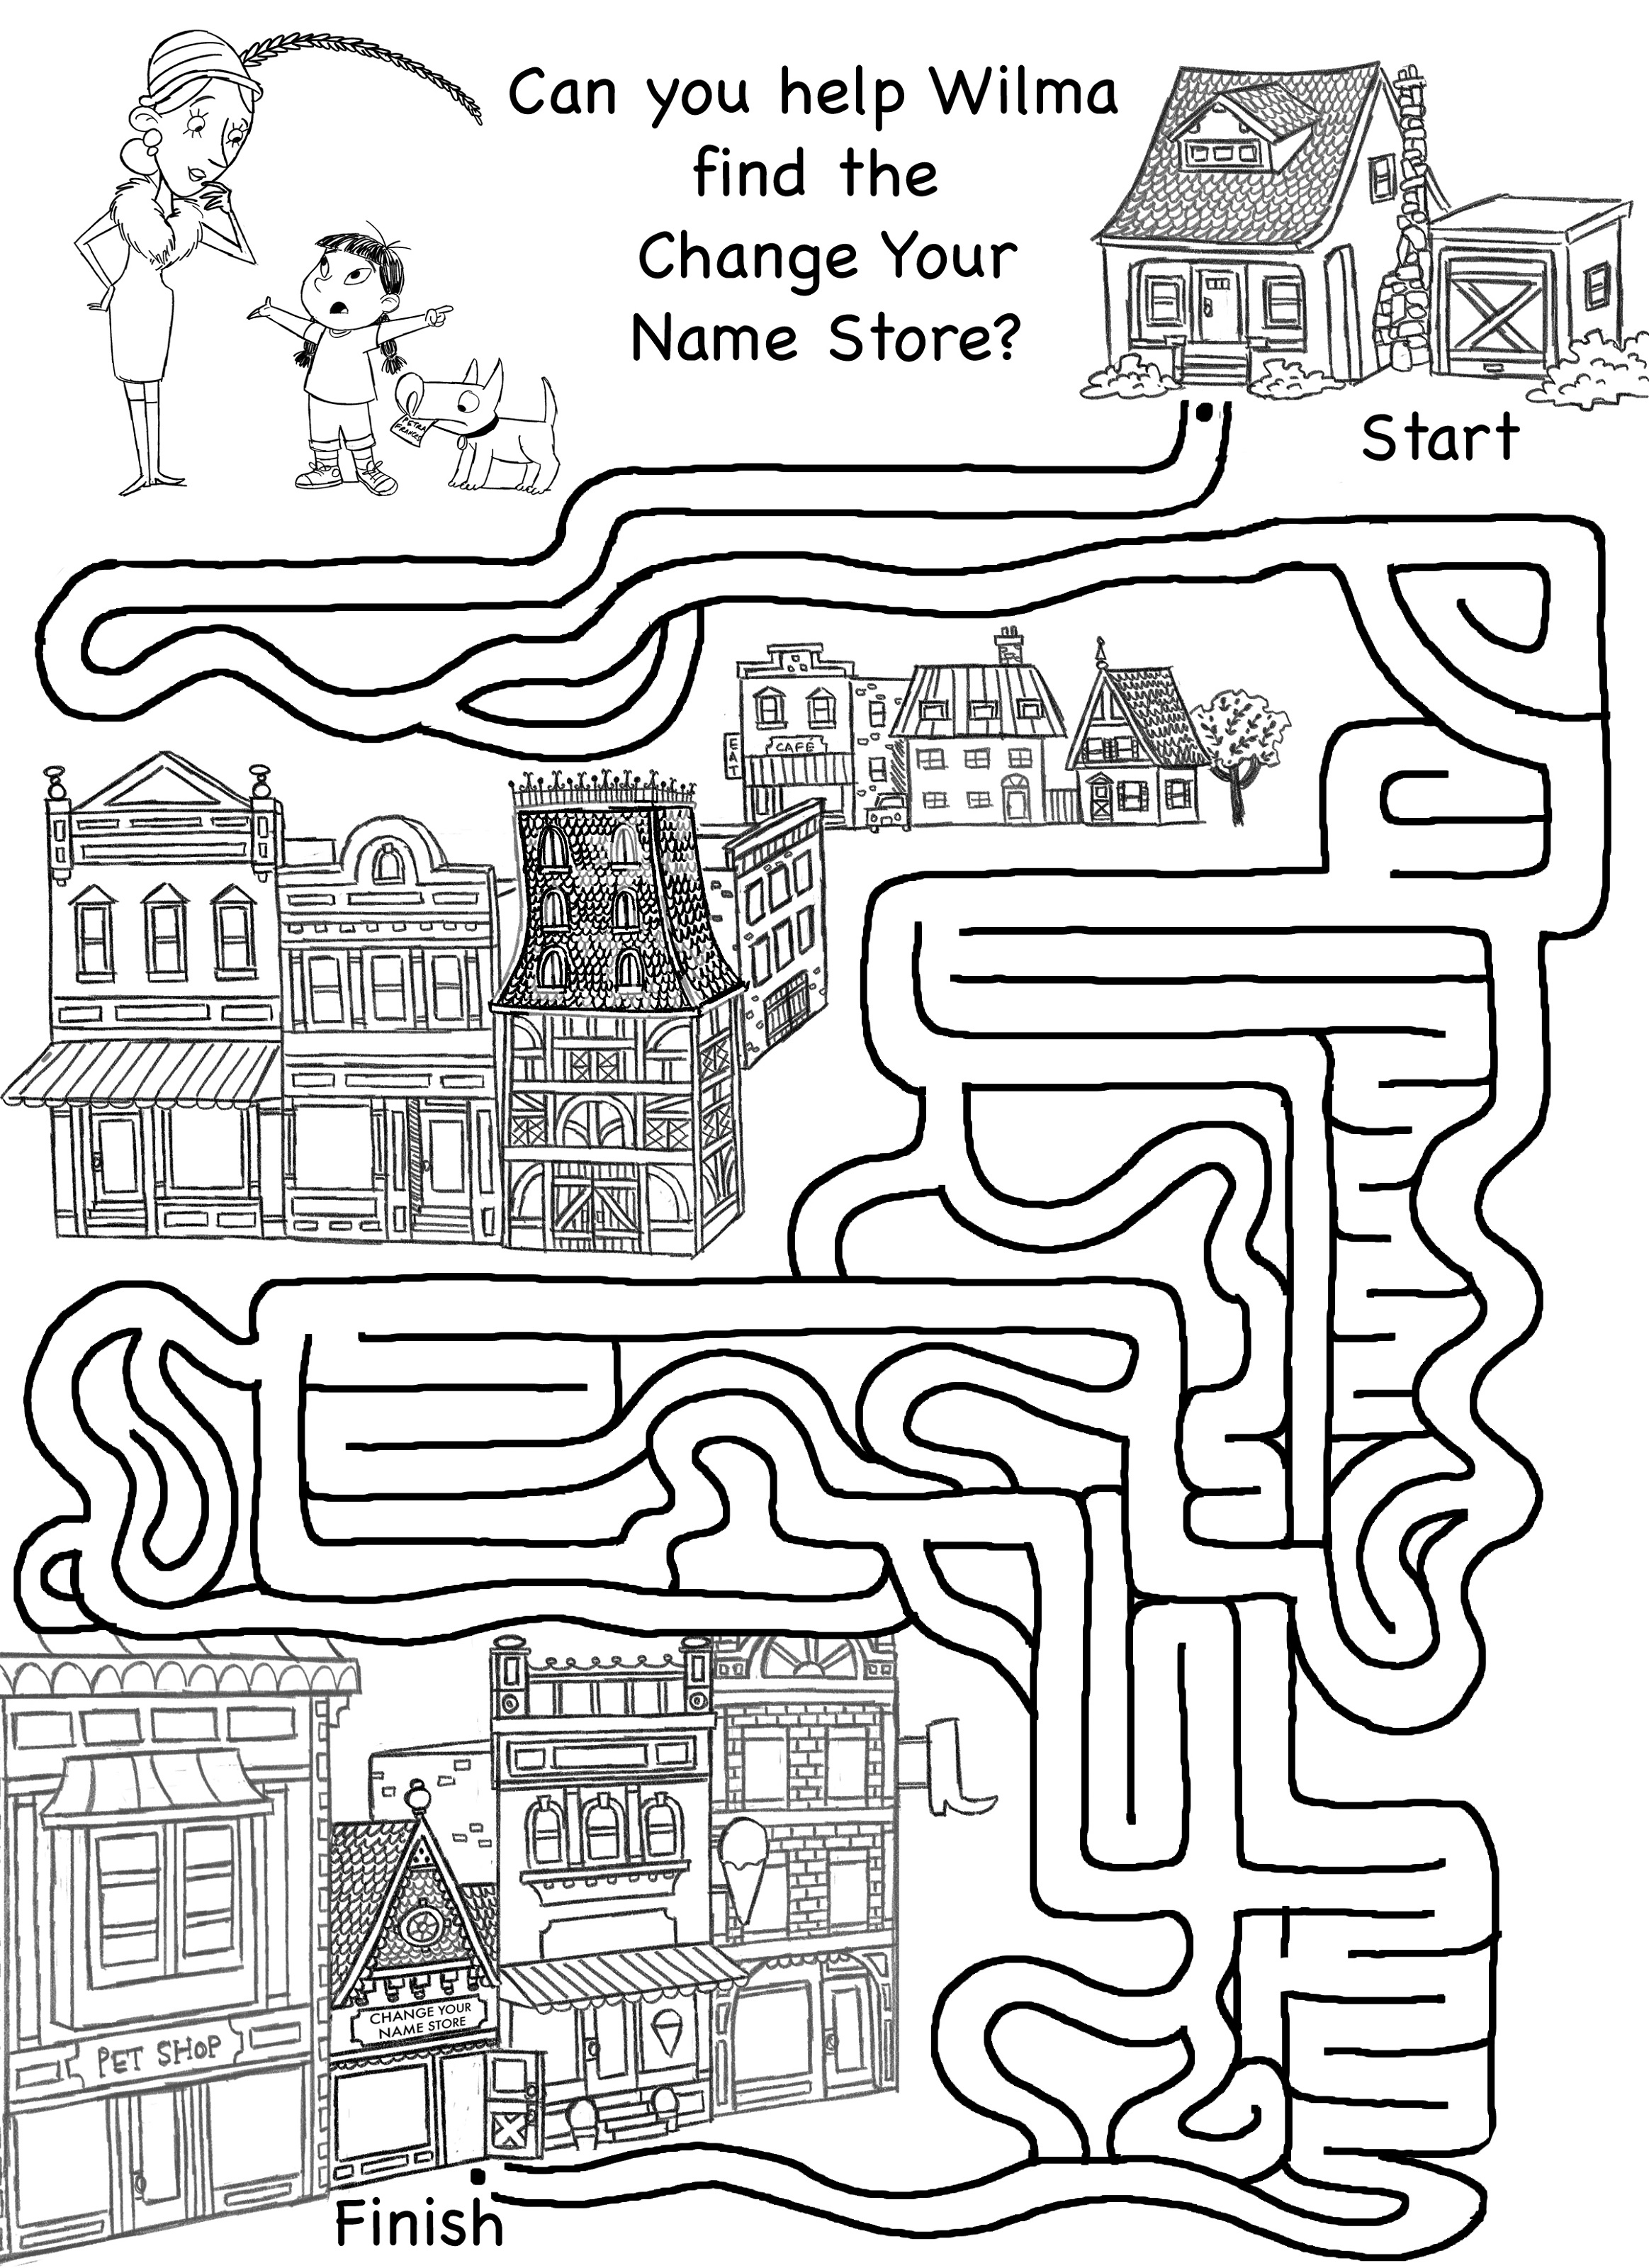 Activity Sheets For Elementary Students MazeActivity Sheets For Elementary Students Maze